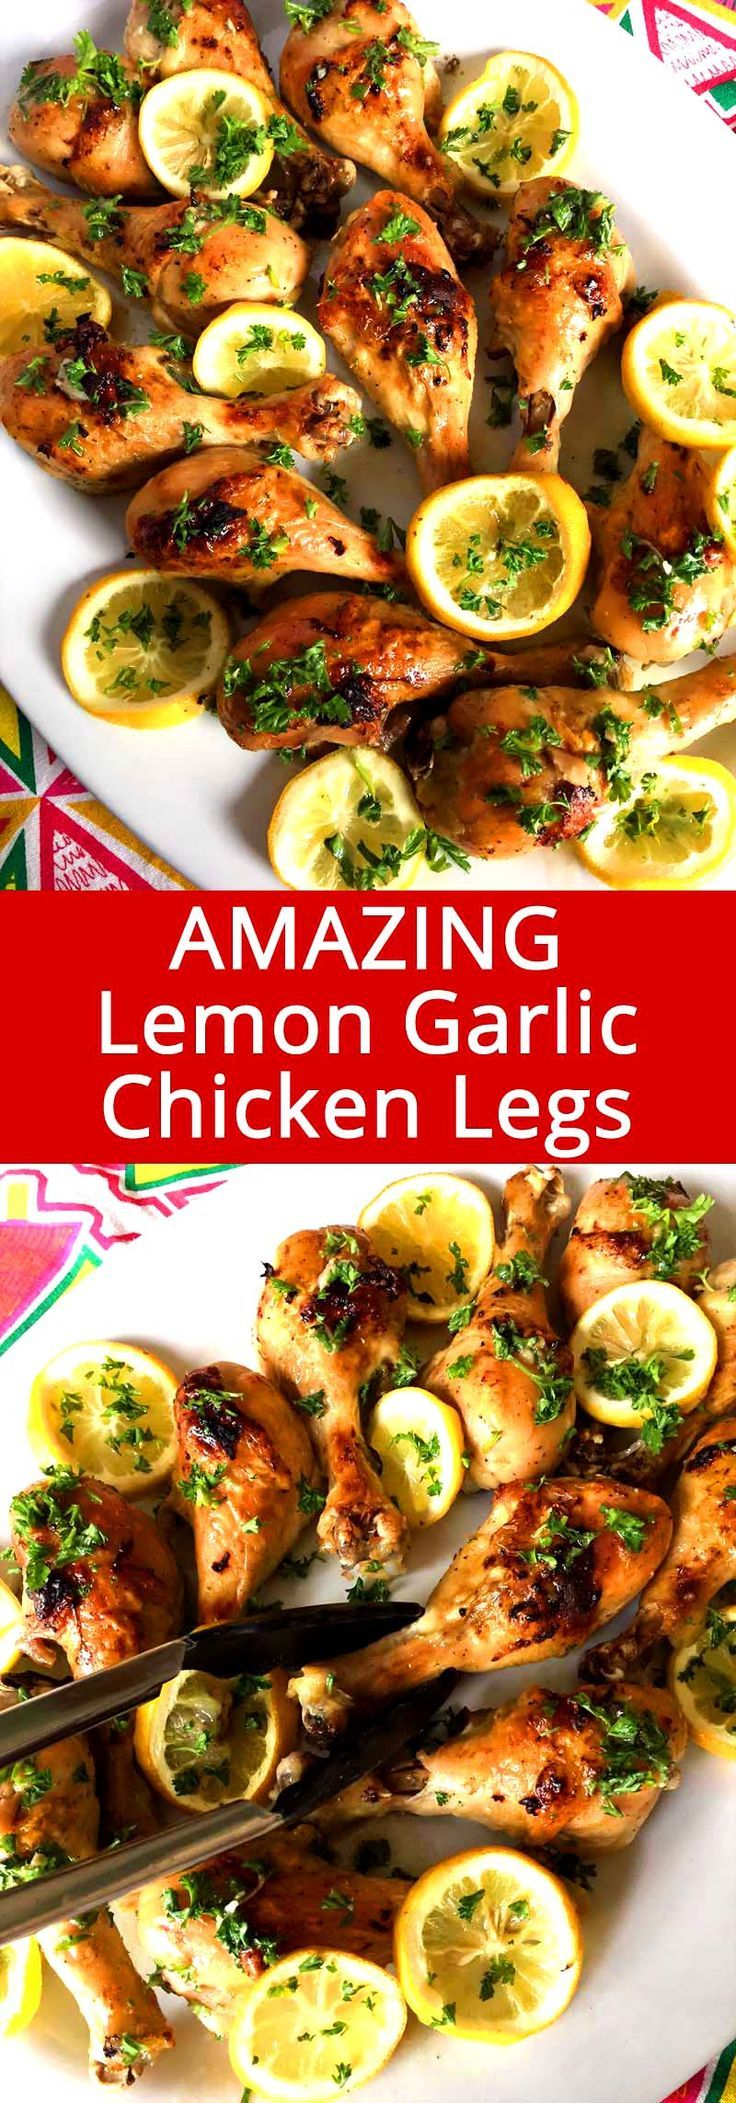 These baked lemon garlic chicken legs are truly amazing! So easy to make and everyone loves them!